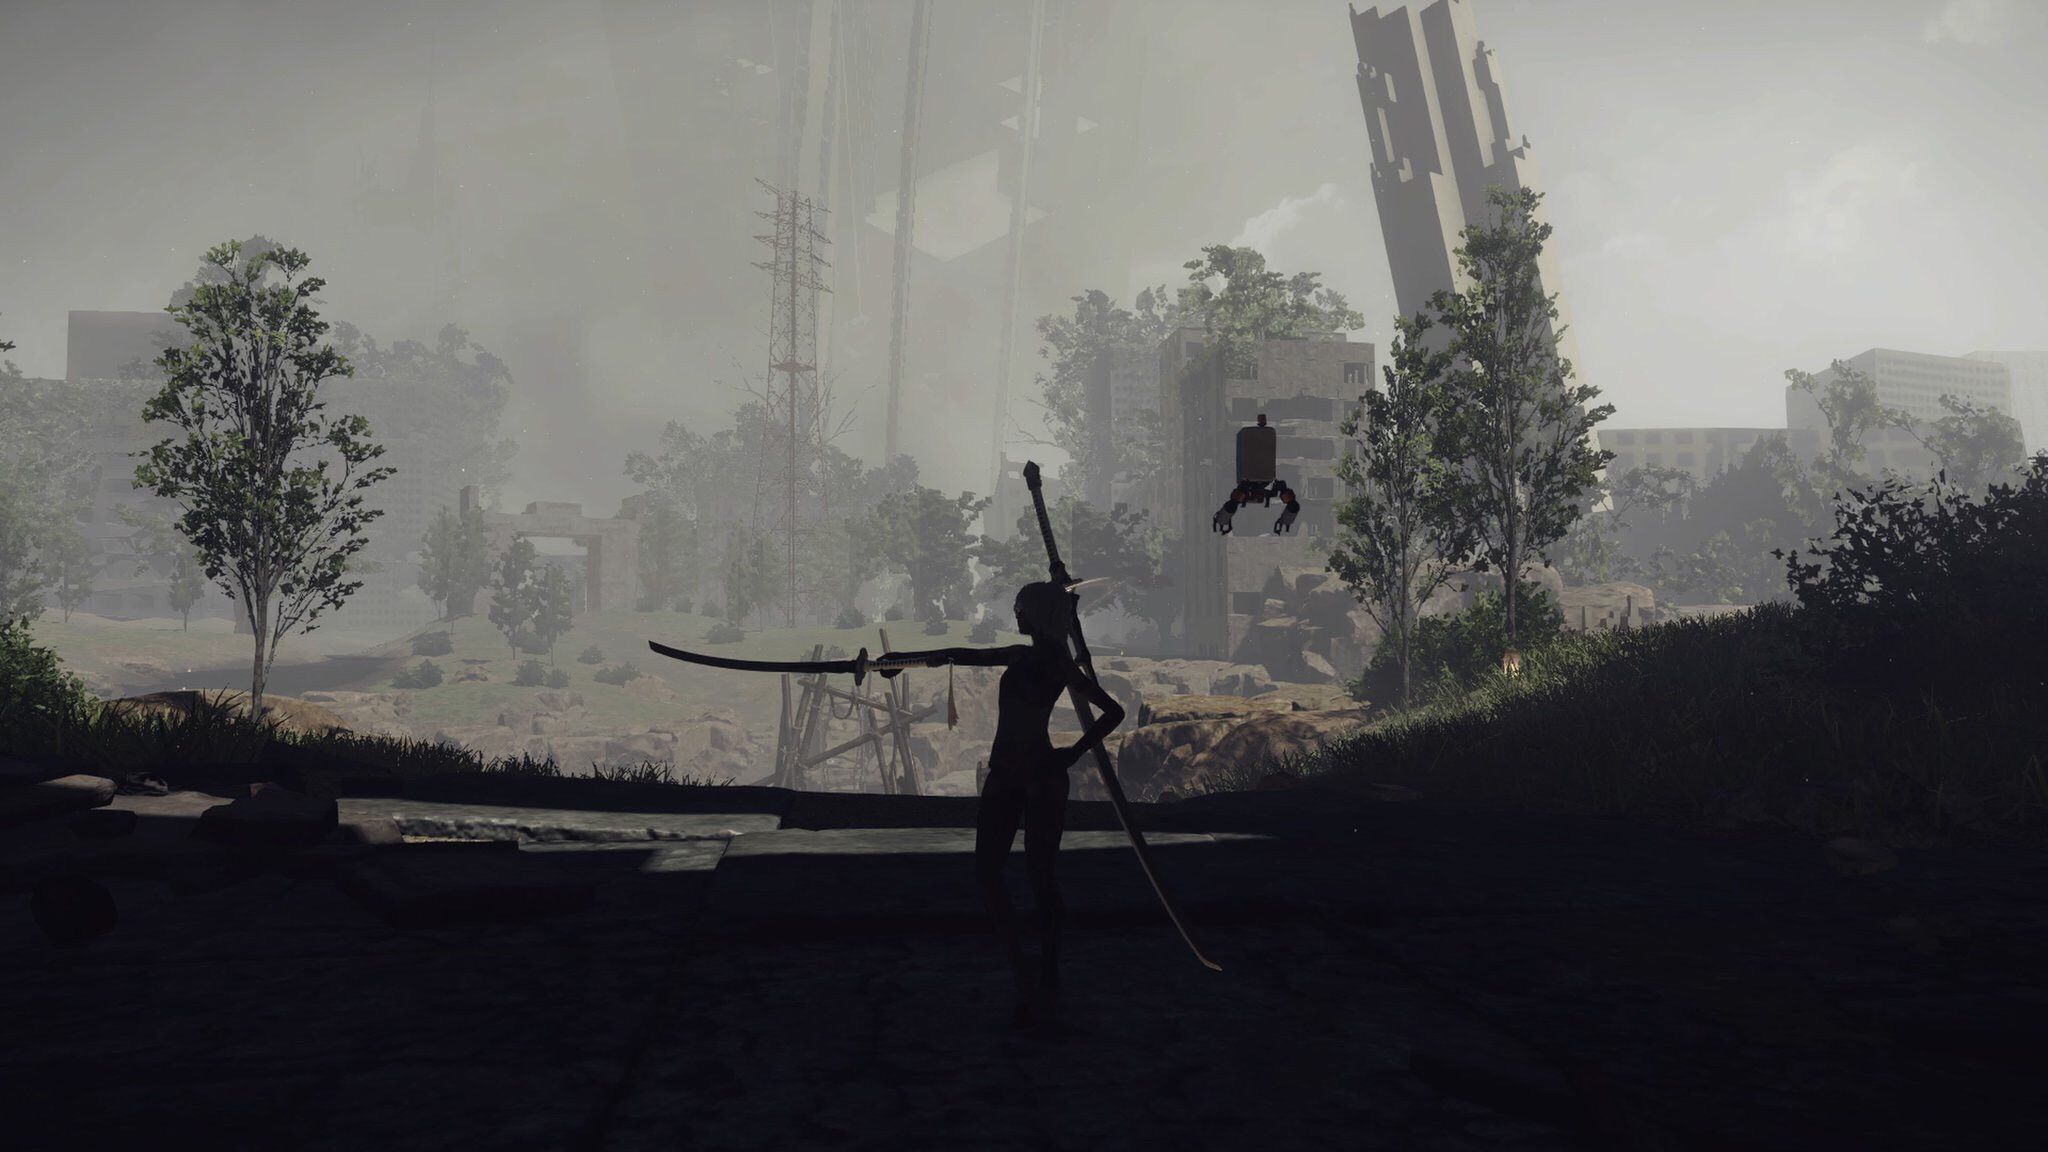 Nierautomata is a great looking game nier automata